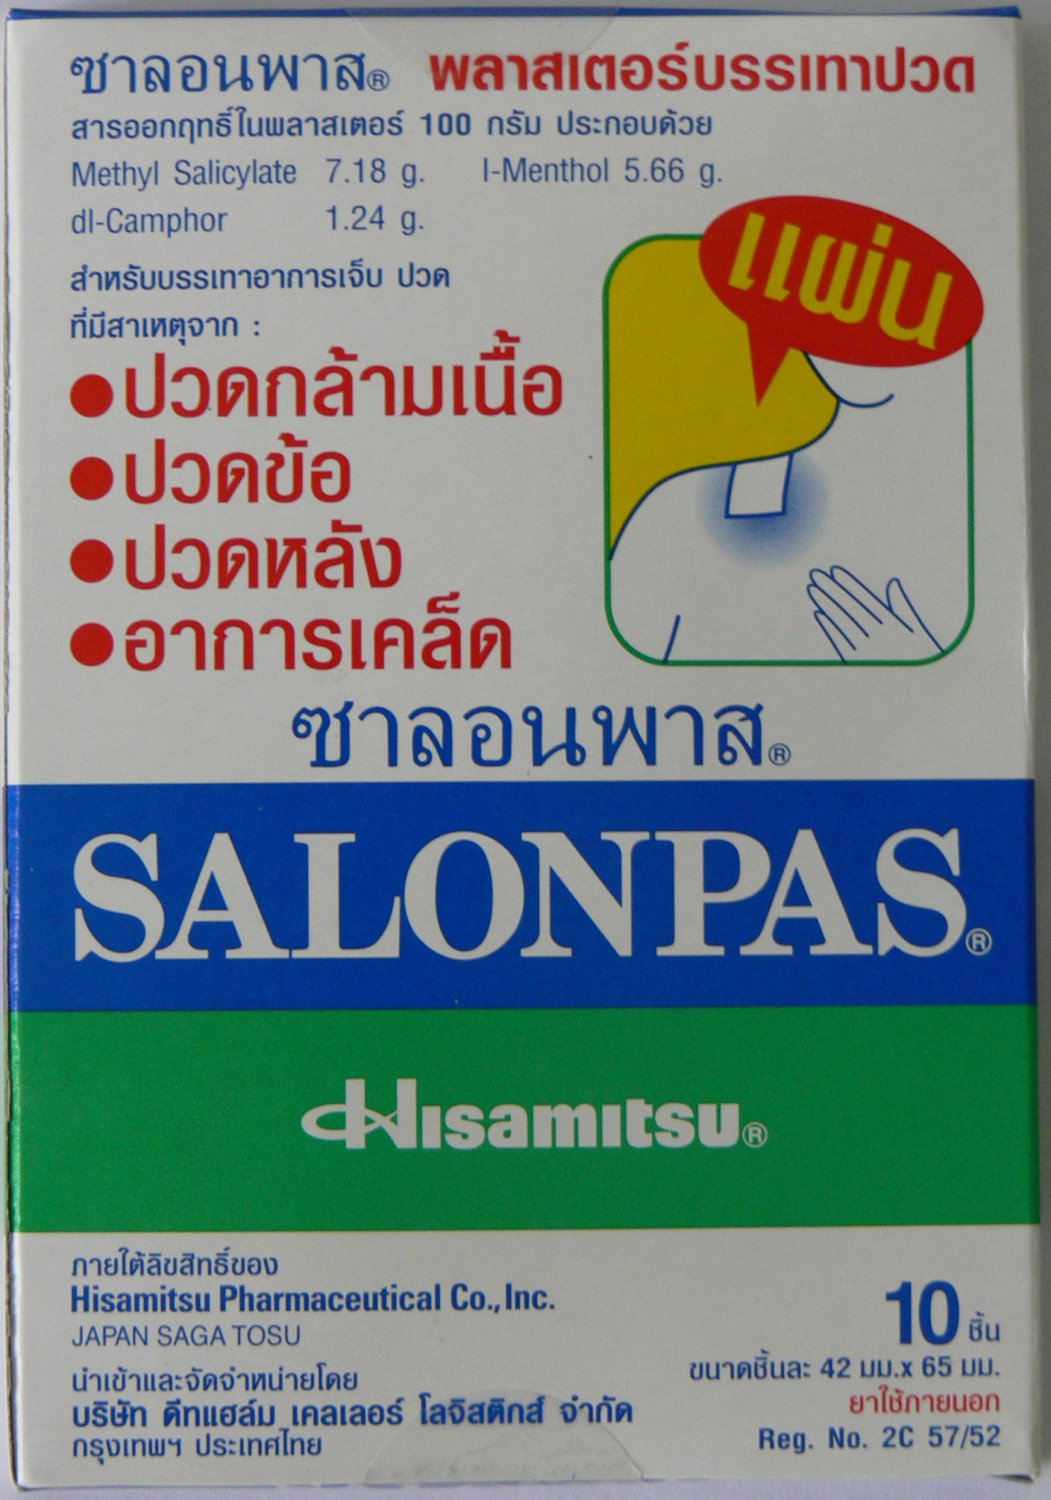 Salonpas Muscle Joint Back Sprain Bruise Pain Relief Arthritis Hisamitsu 12 Patch